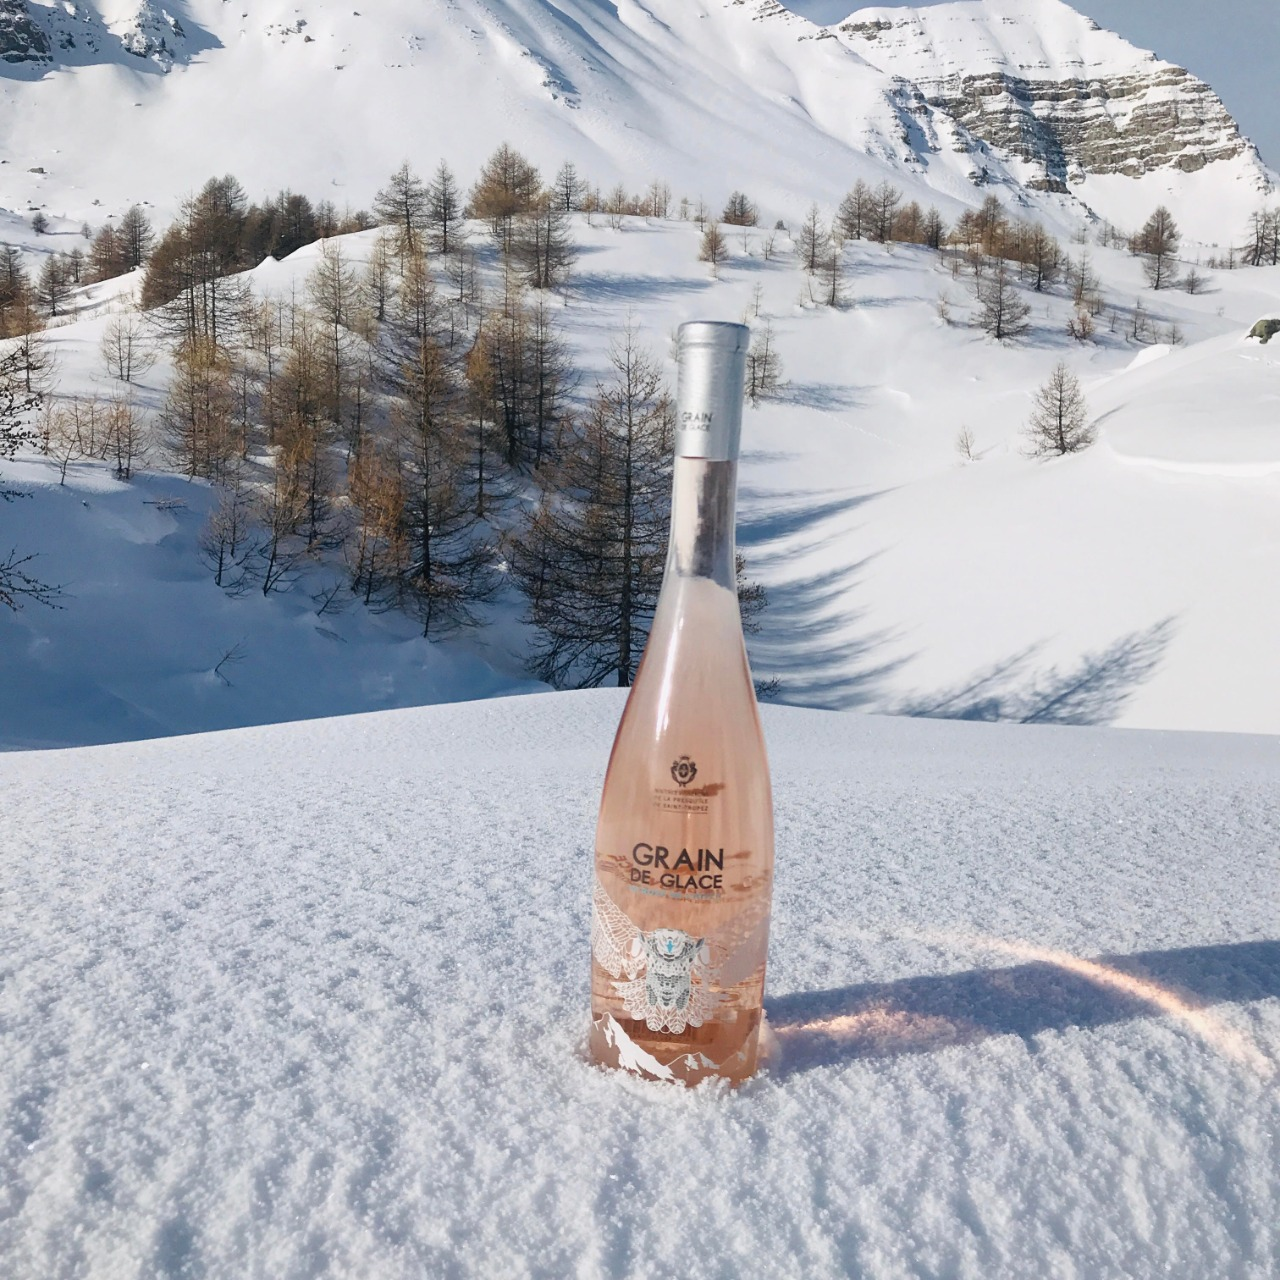 Grain de Glace – O Rosé Do Inverno